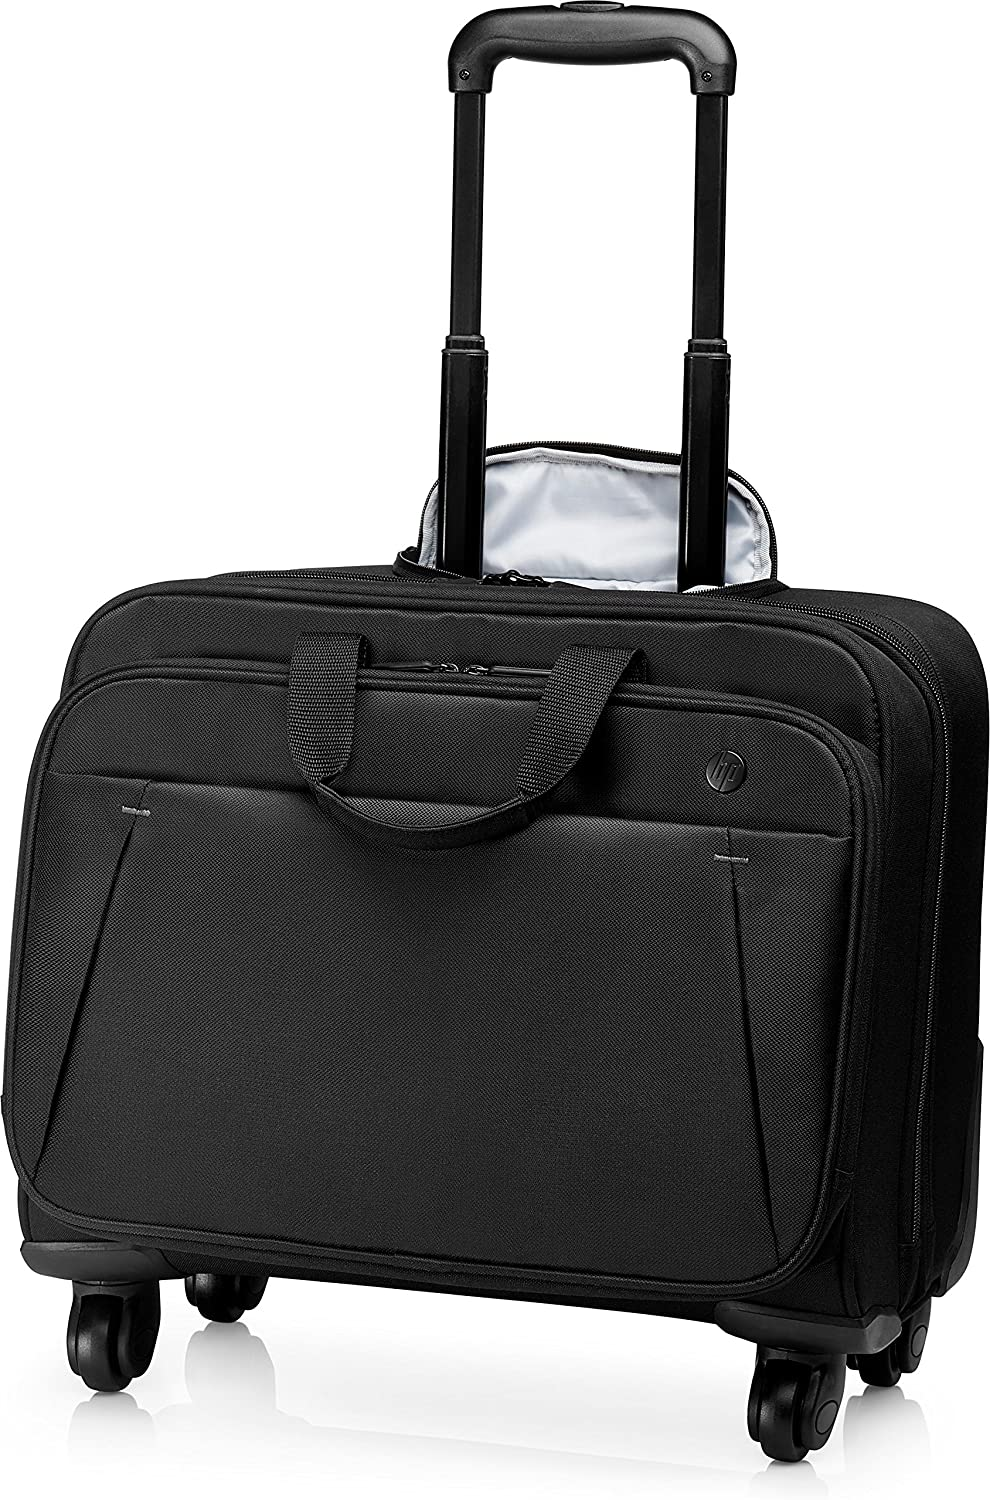 "HP Carrying Case (Roller) for 17.3"" Notebook, Credit Card, Passport, Accessories - Black"